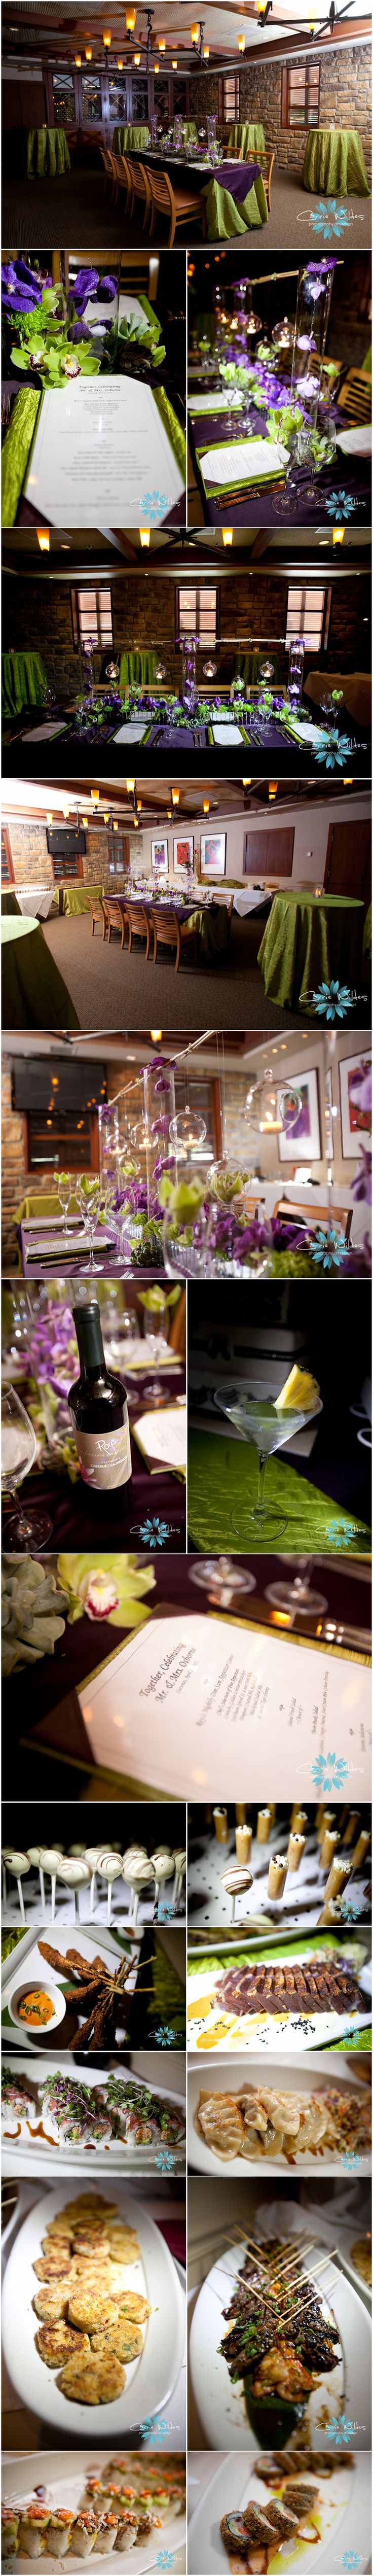 Rehearsal dinner idea-decorating your rehearsal dinner space is a great idea. Makes the room more inviting and more like a wedding rehearsal, rather than just eating out at a restaurant or a persons home